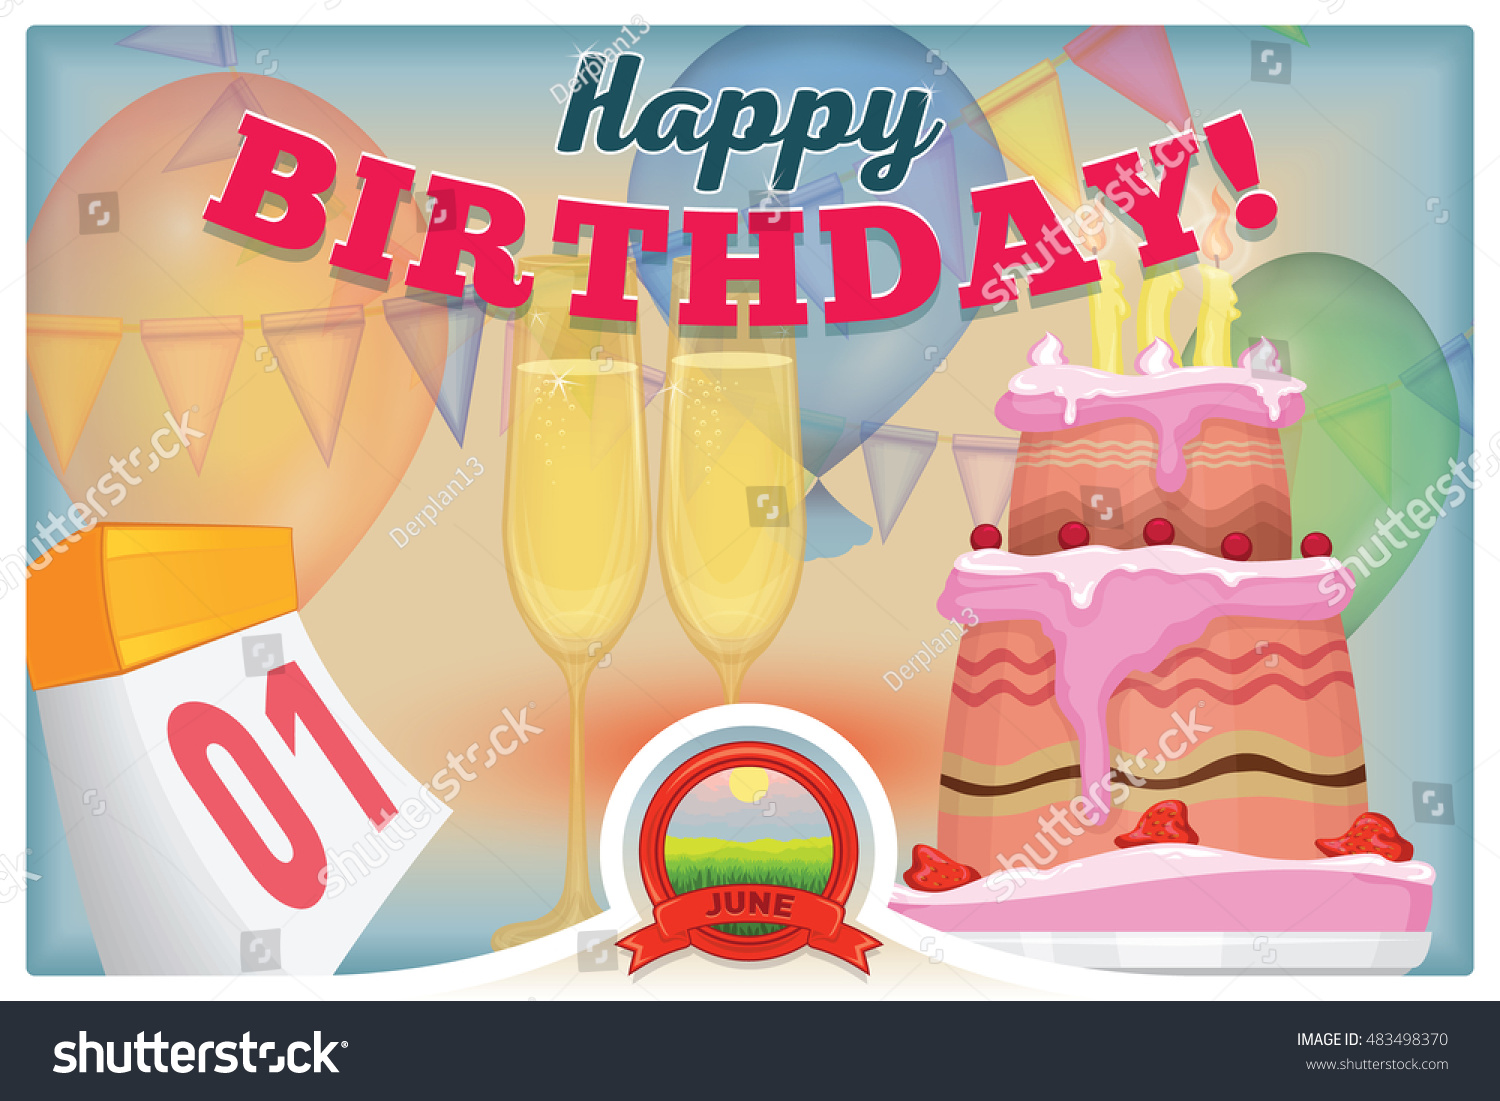 1 June Greeting Card With Happy Birthday Colored Vector Illustration Flyer The